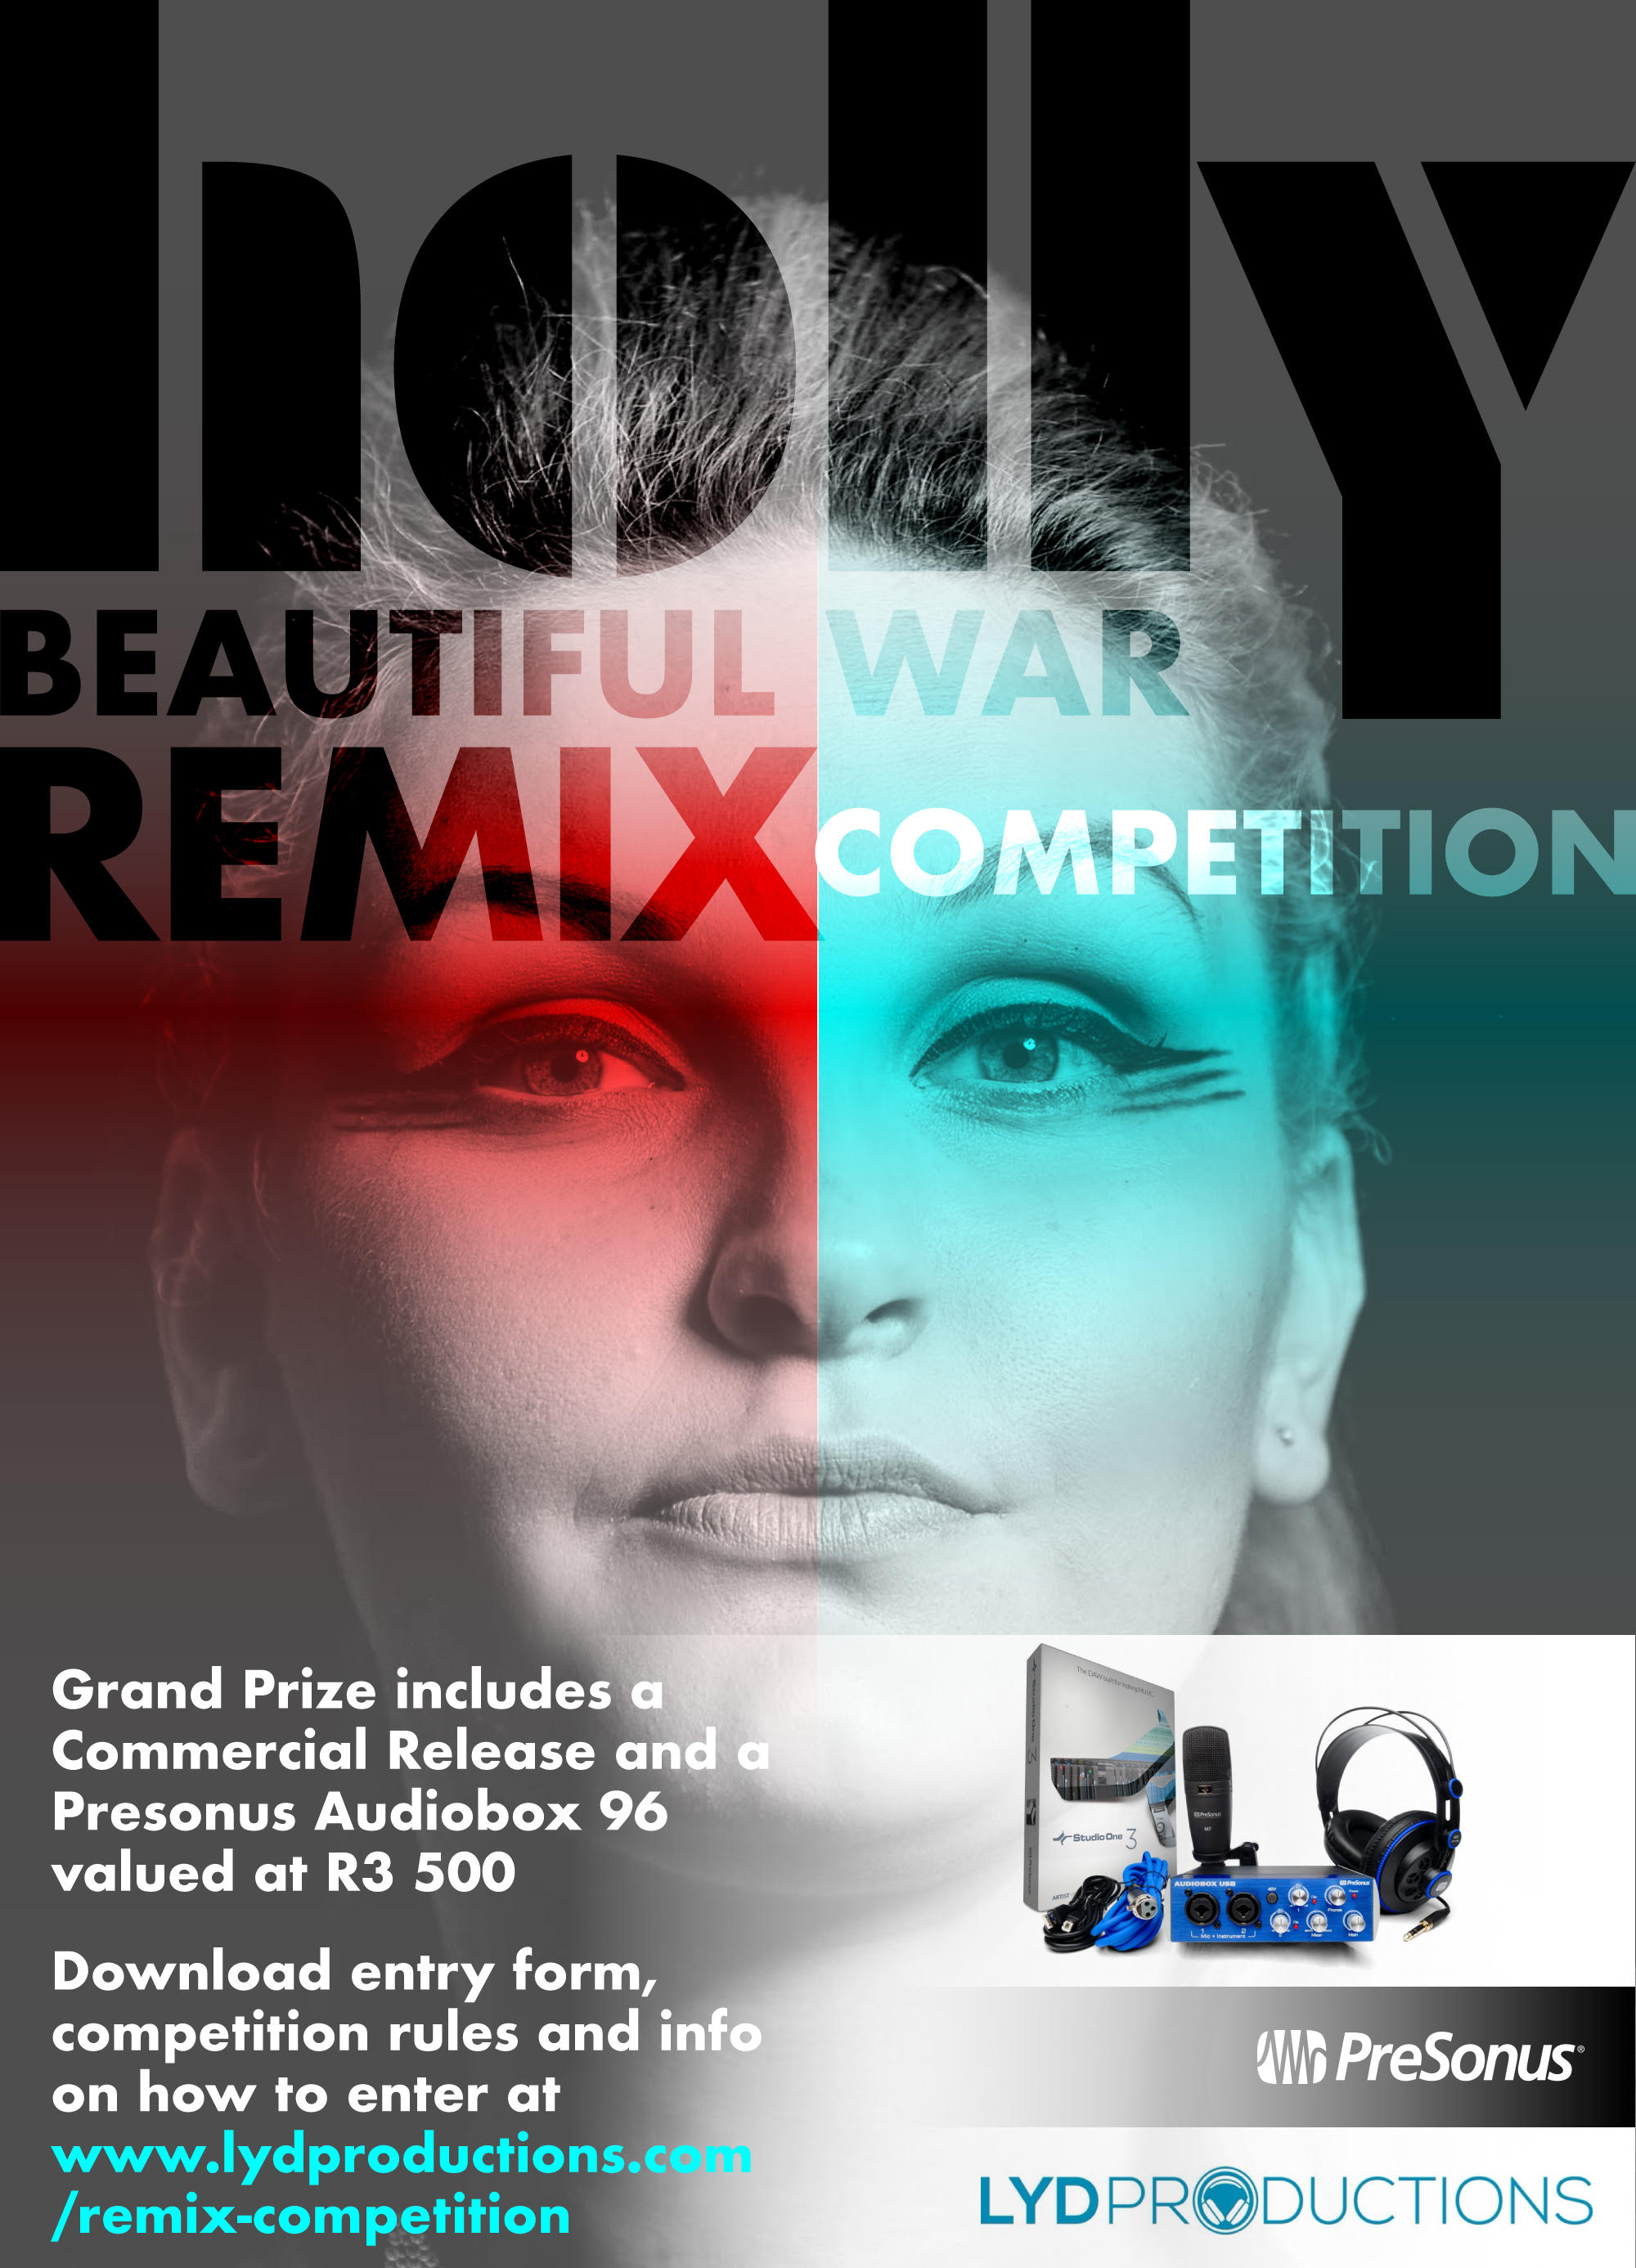 Remix Holly Wasserfall - Beautiful